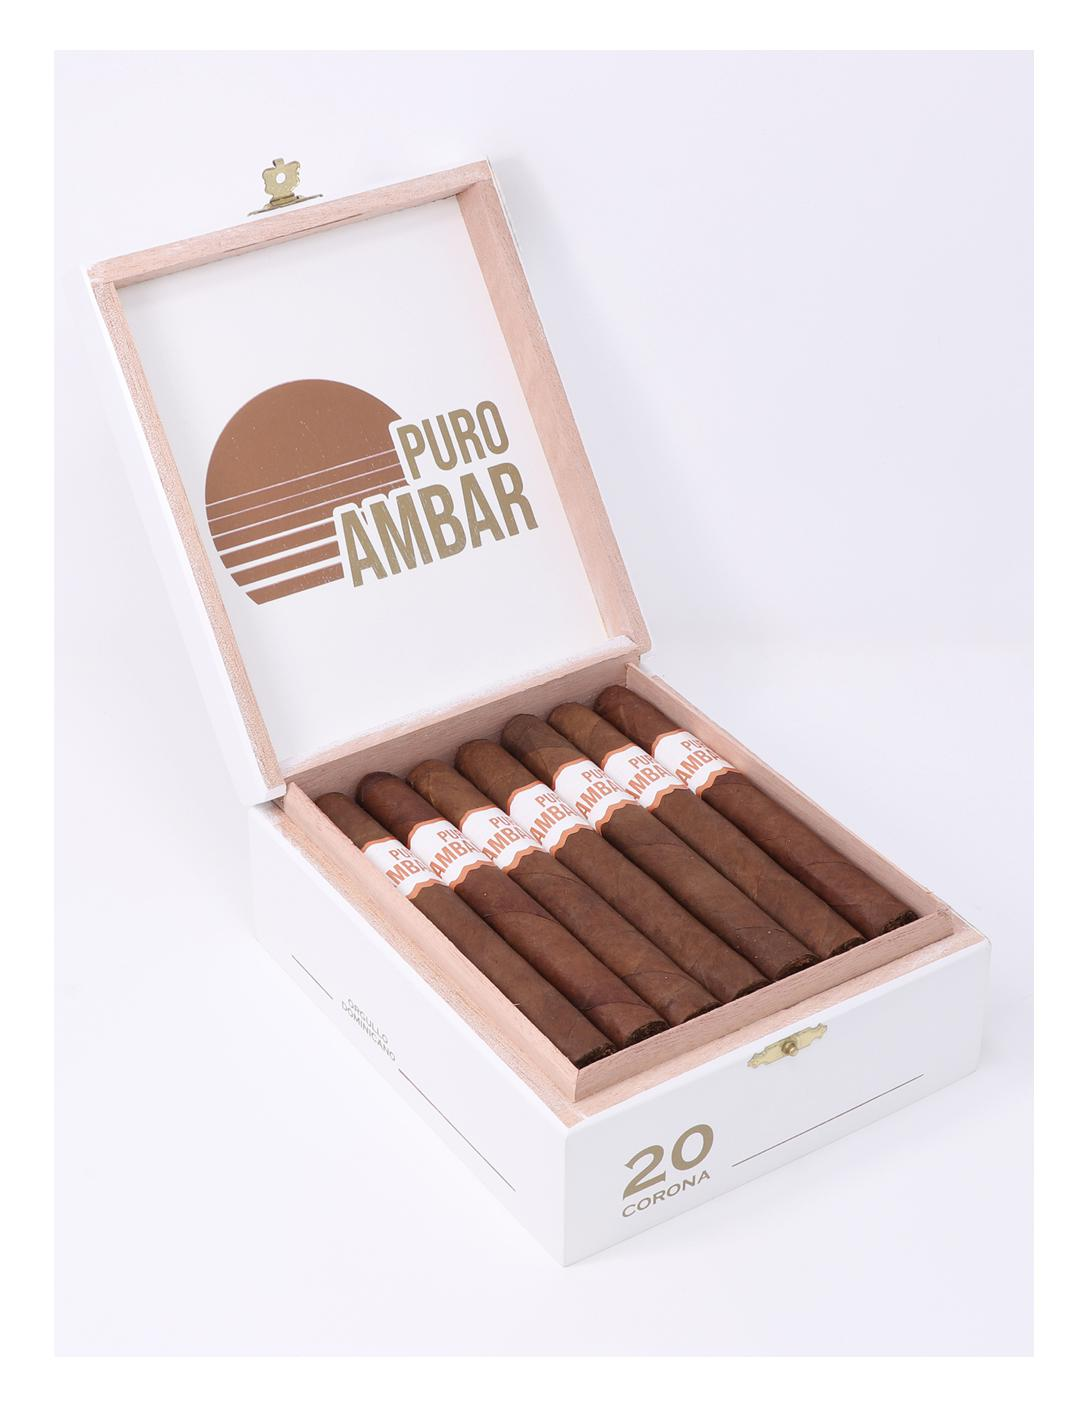 Cigar News: El Artista Gives Puro Ambar a Refresh